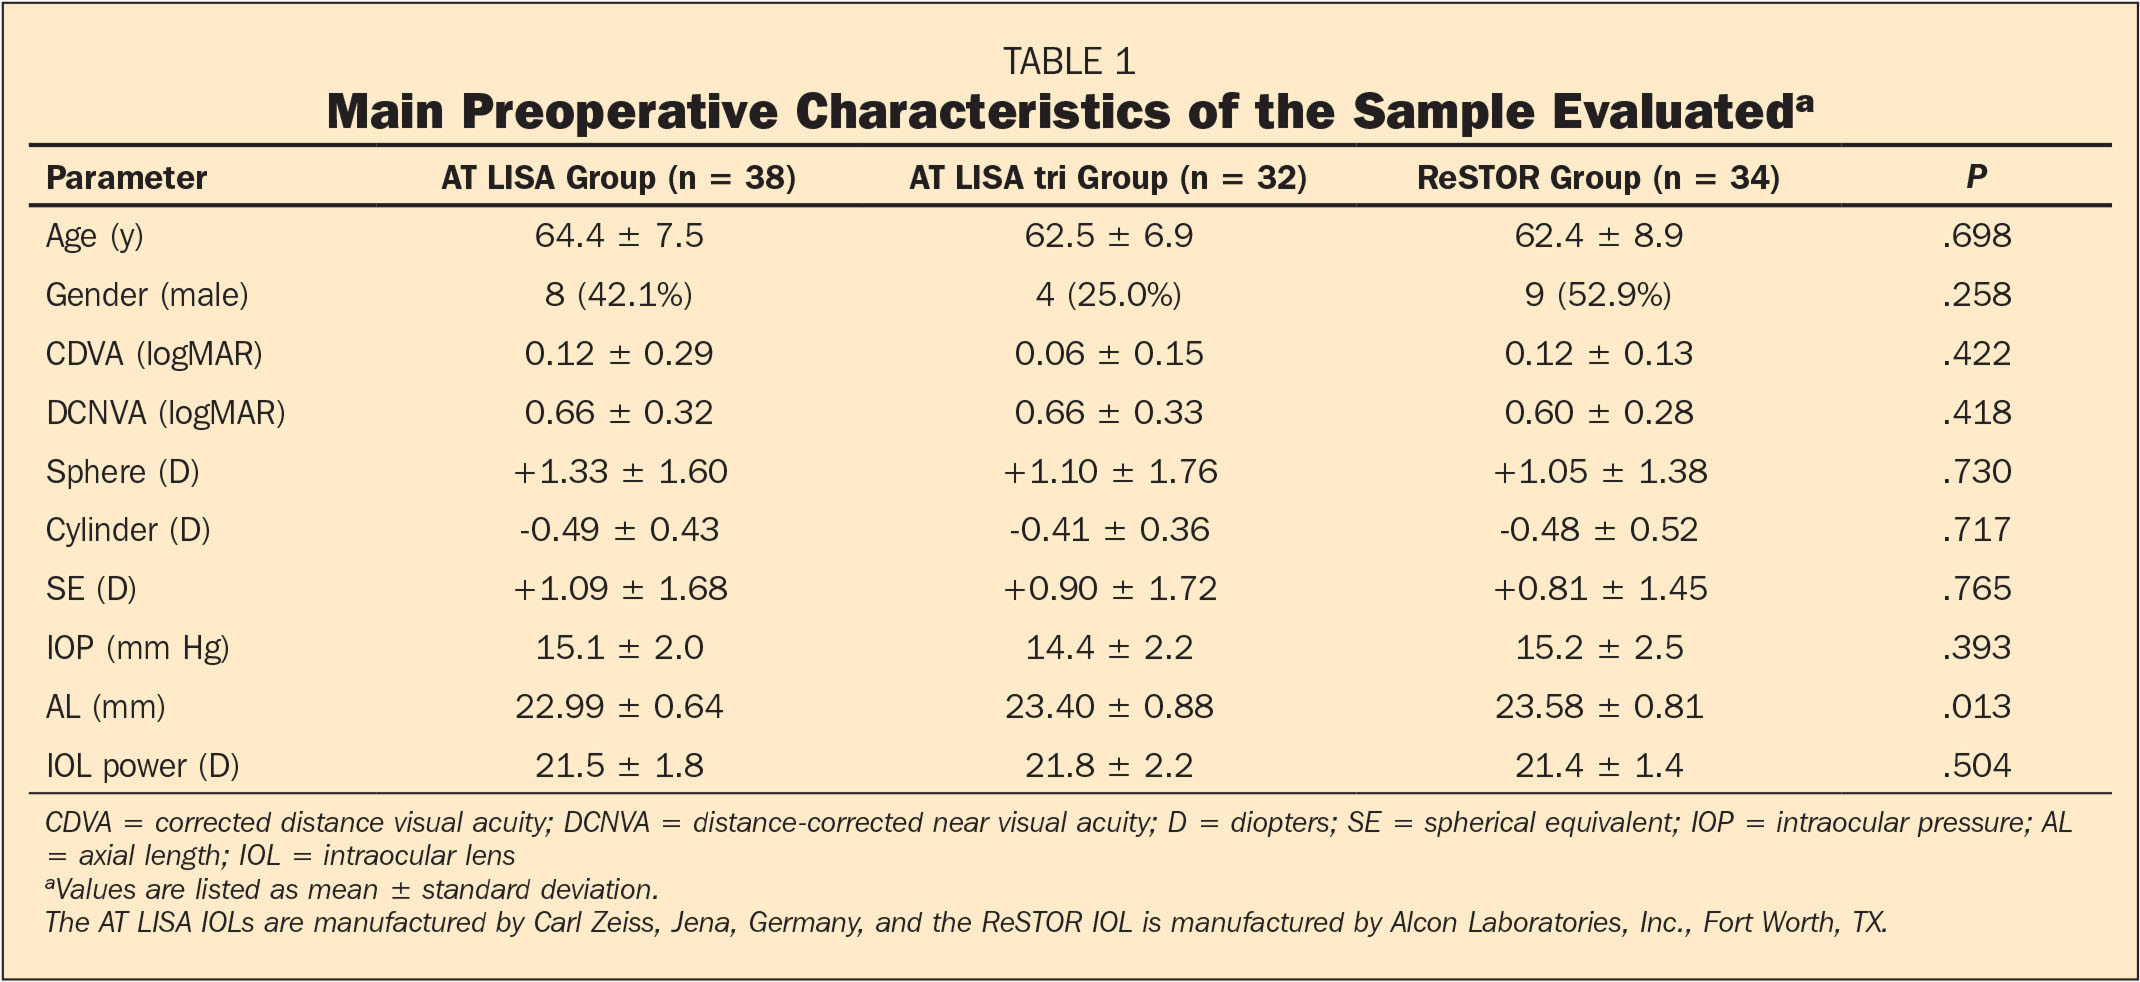 Main Preoperative Characteristics of the Sample Evaluateda